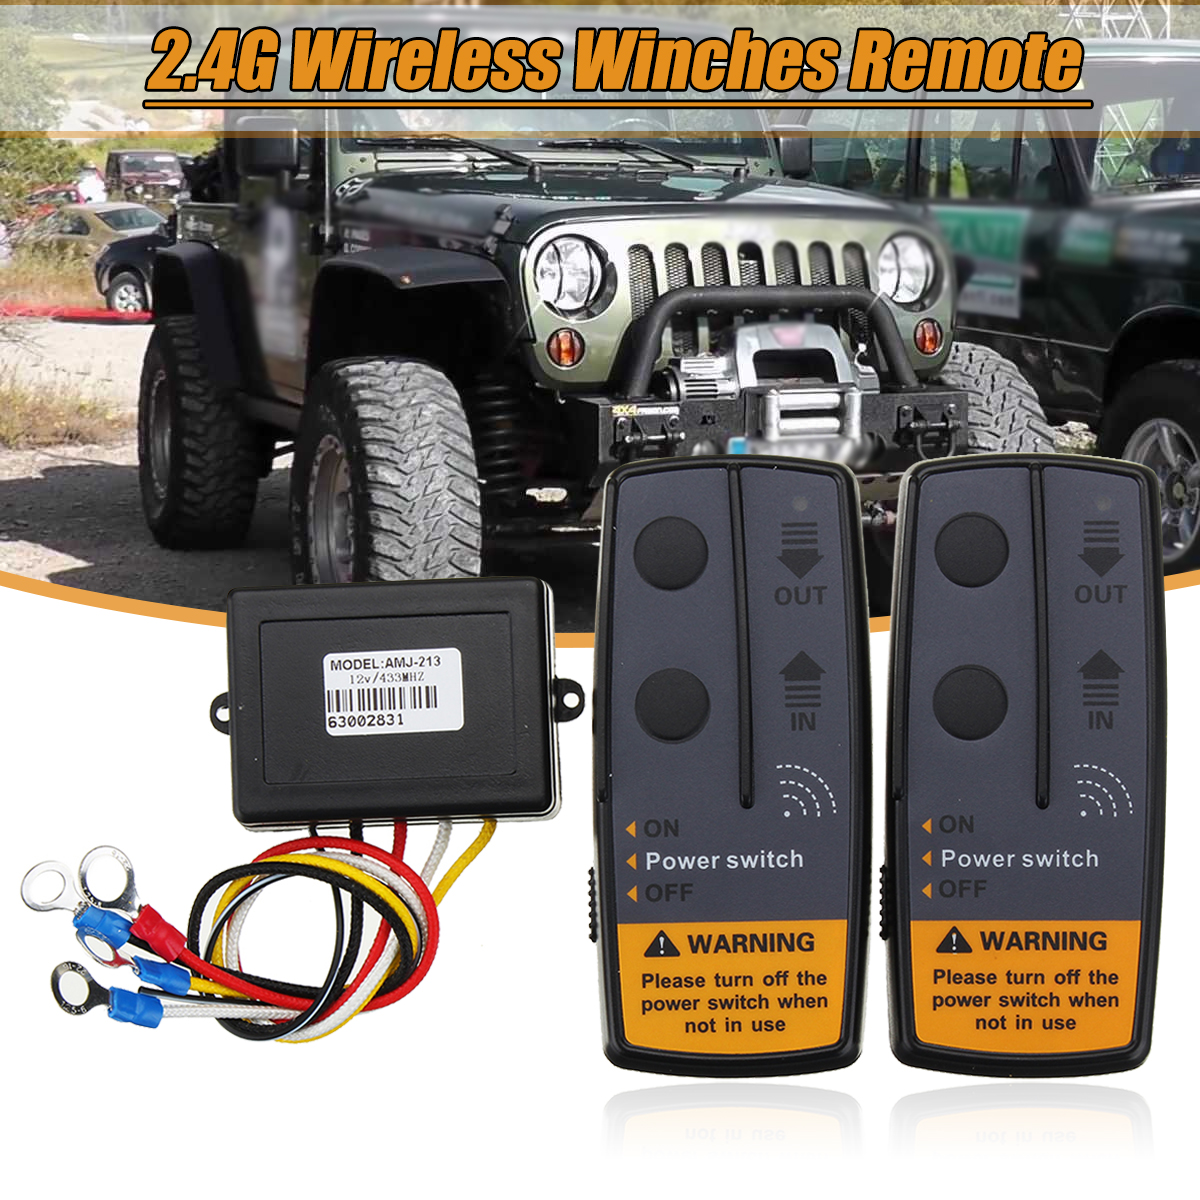 2.4G 12V Digital Wireless Winches Remote Control Recovery